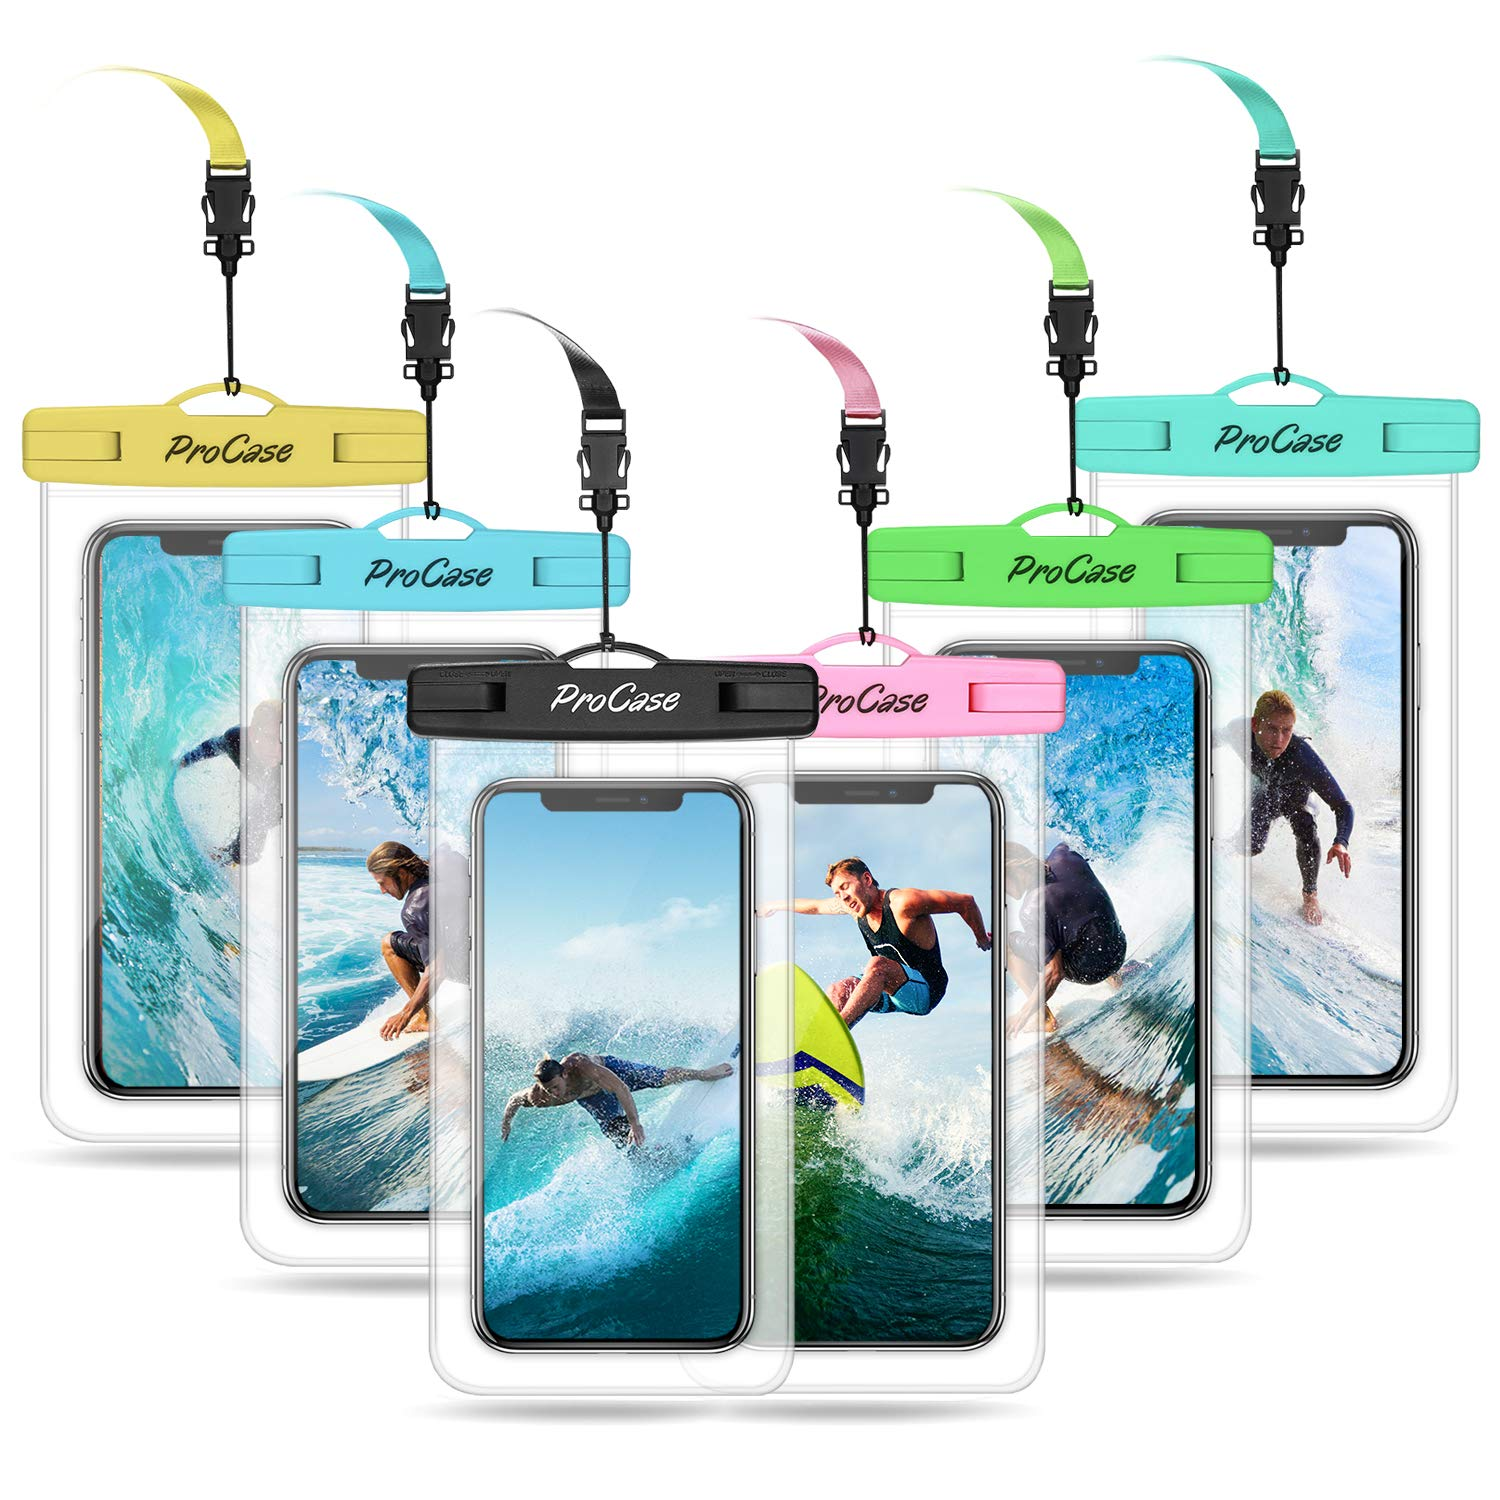 ProCase Universal Waterproof Pouch Cellphone Dry Bag Underwater Case for iPhone Xs Max XR X 8 7 Galaxy up to 6.8'', Waterproof Phone Case for Beach Swimming Snorkeling Water Park -6 Pack by ProCase